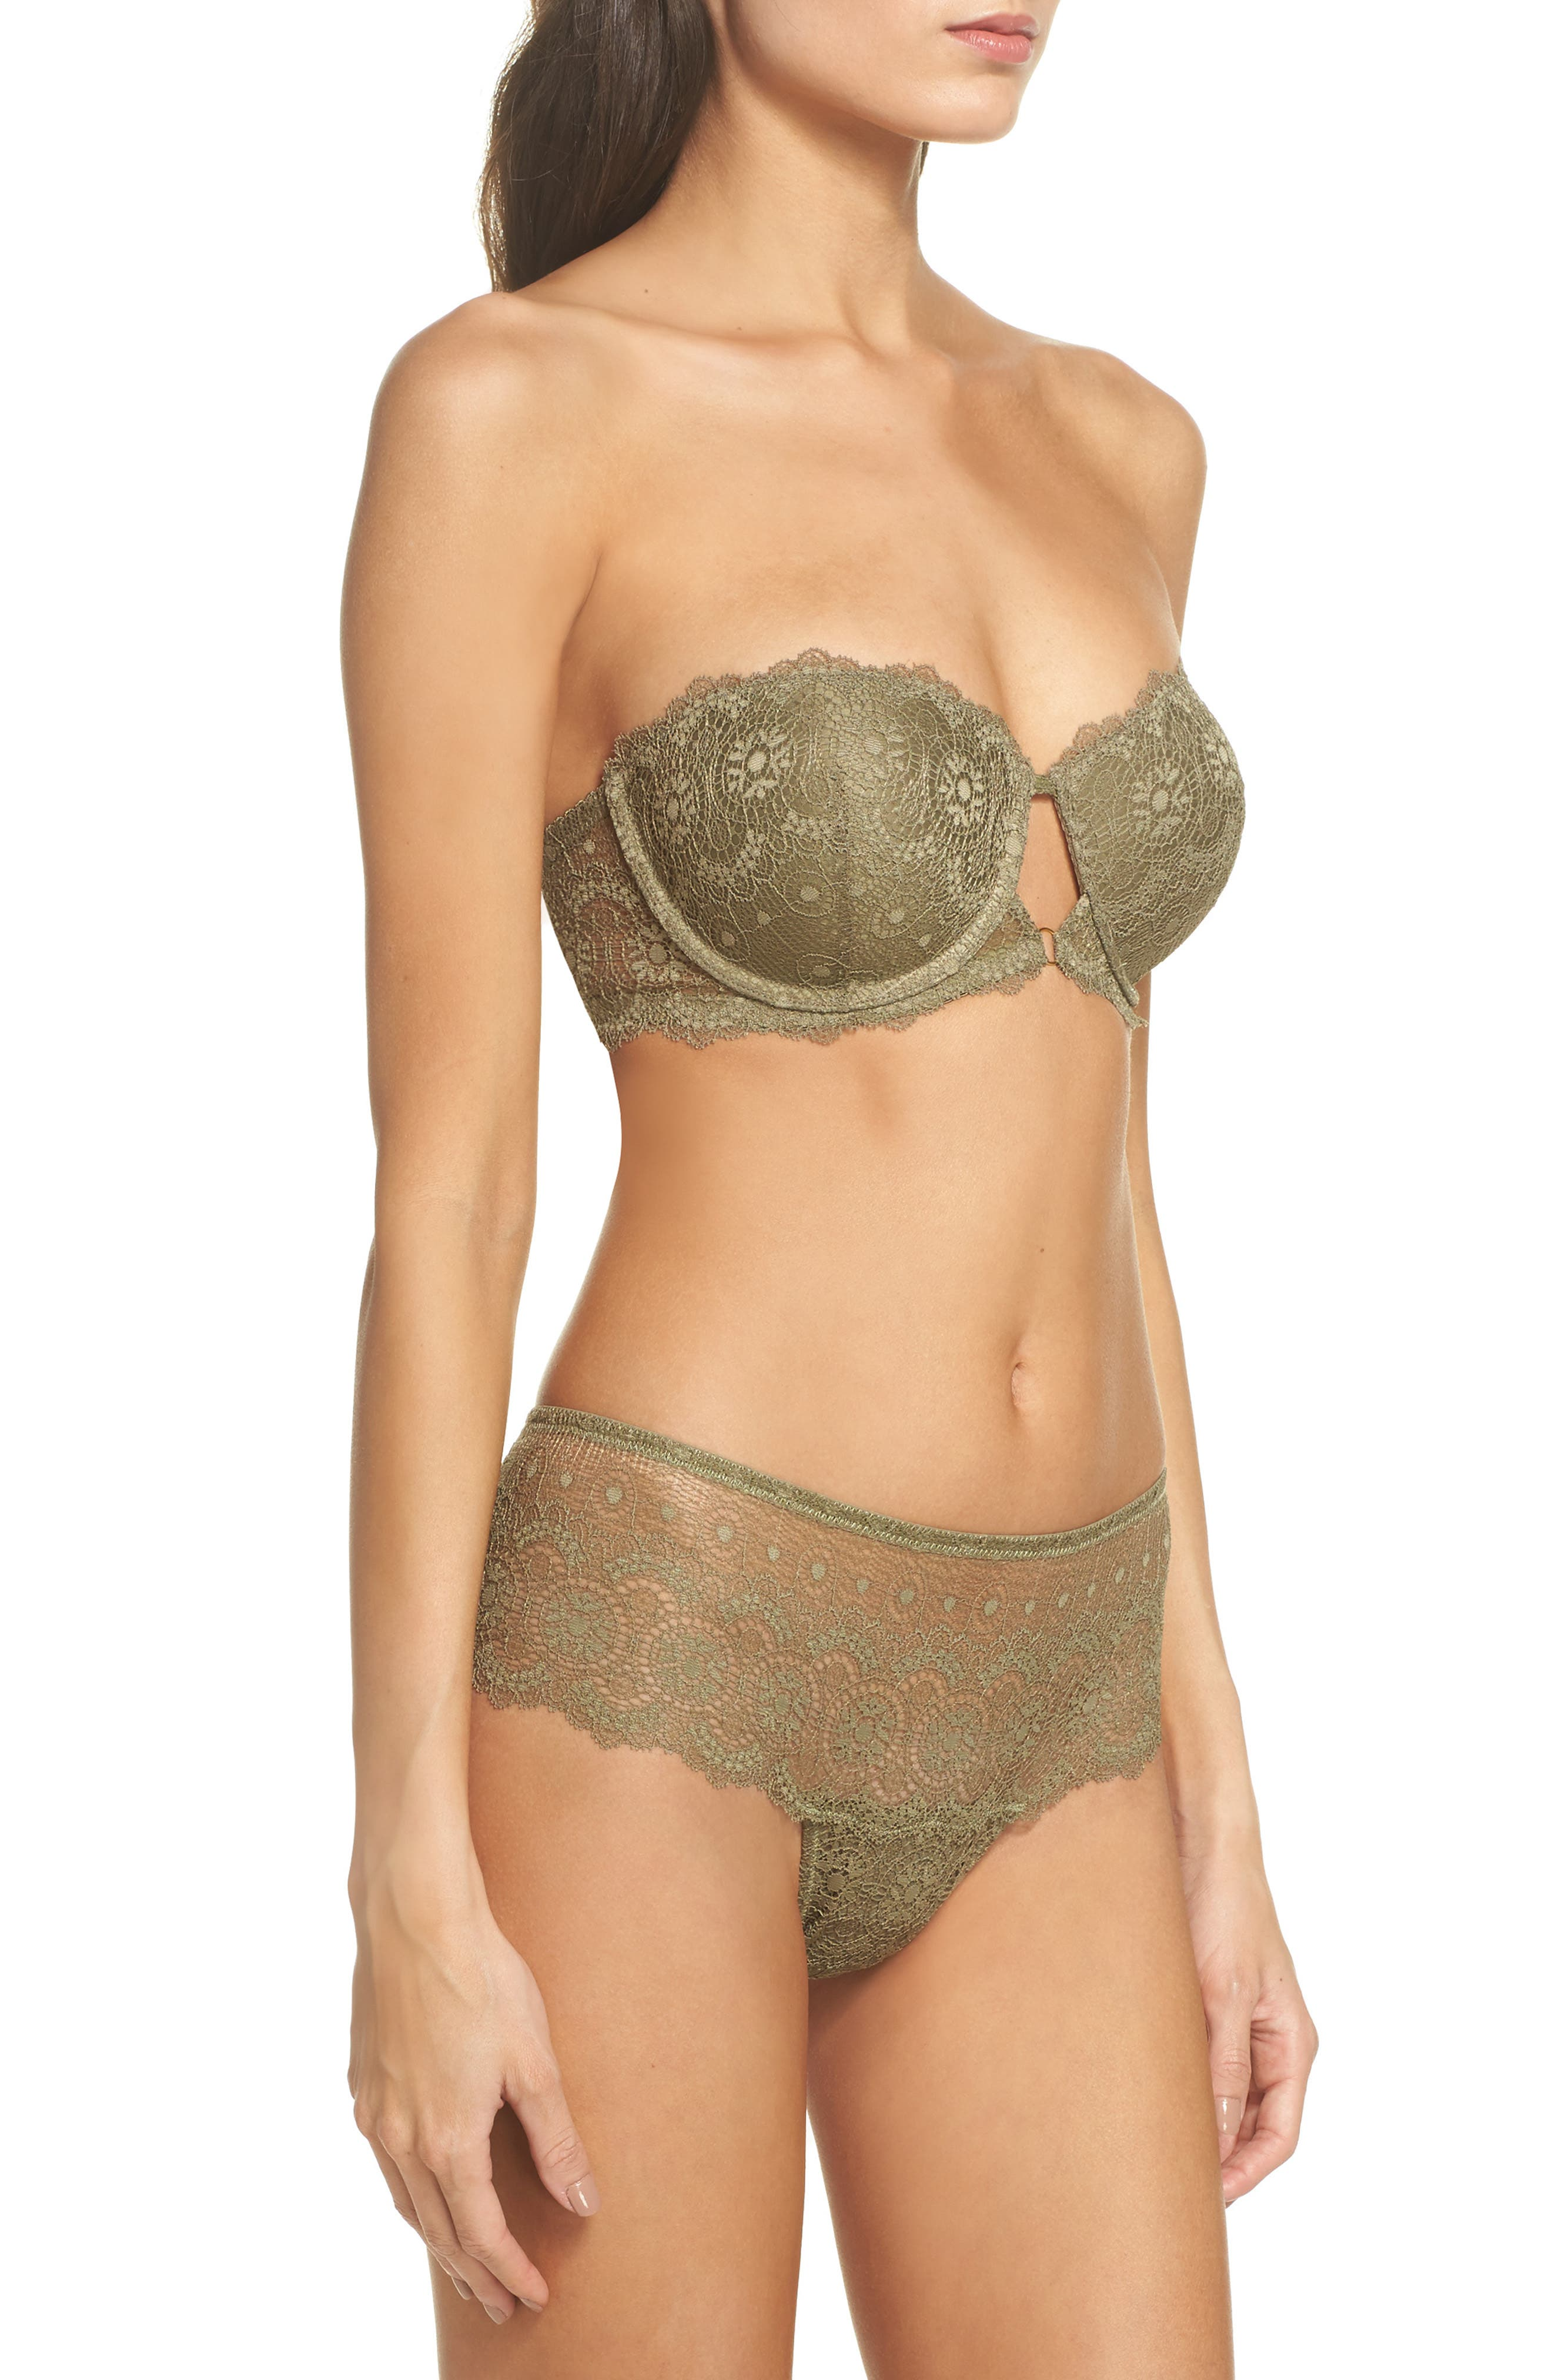 Strapless Underwire Lace Bra,                             Alternate thumbnail 9, color,                             Mermaid